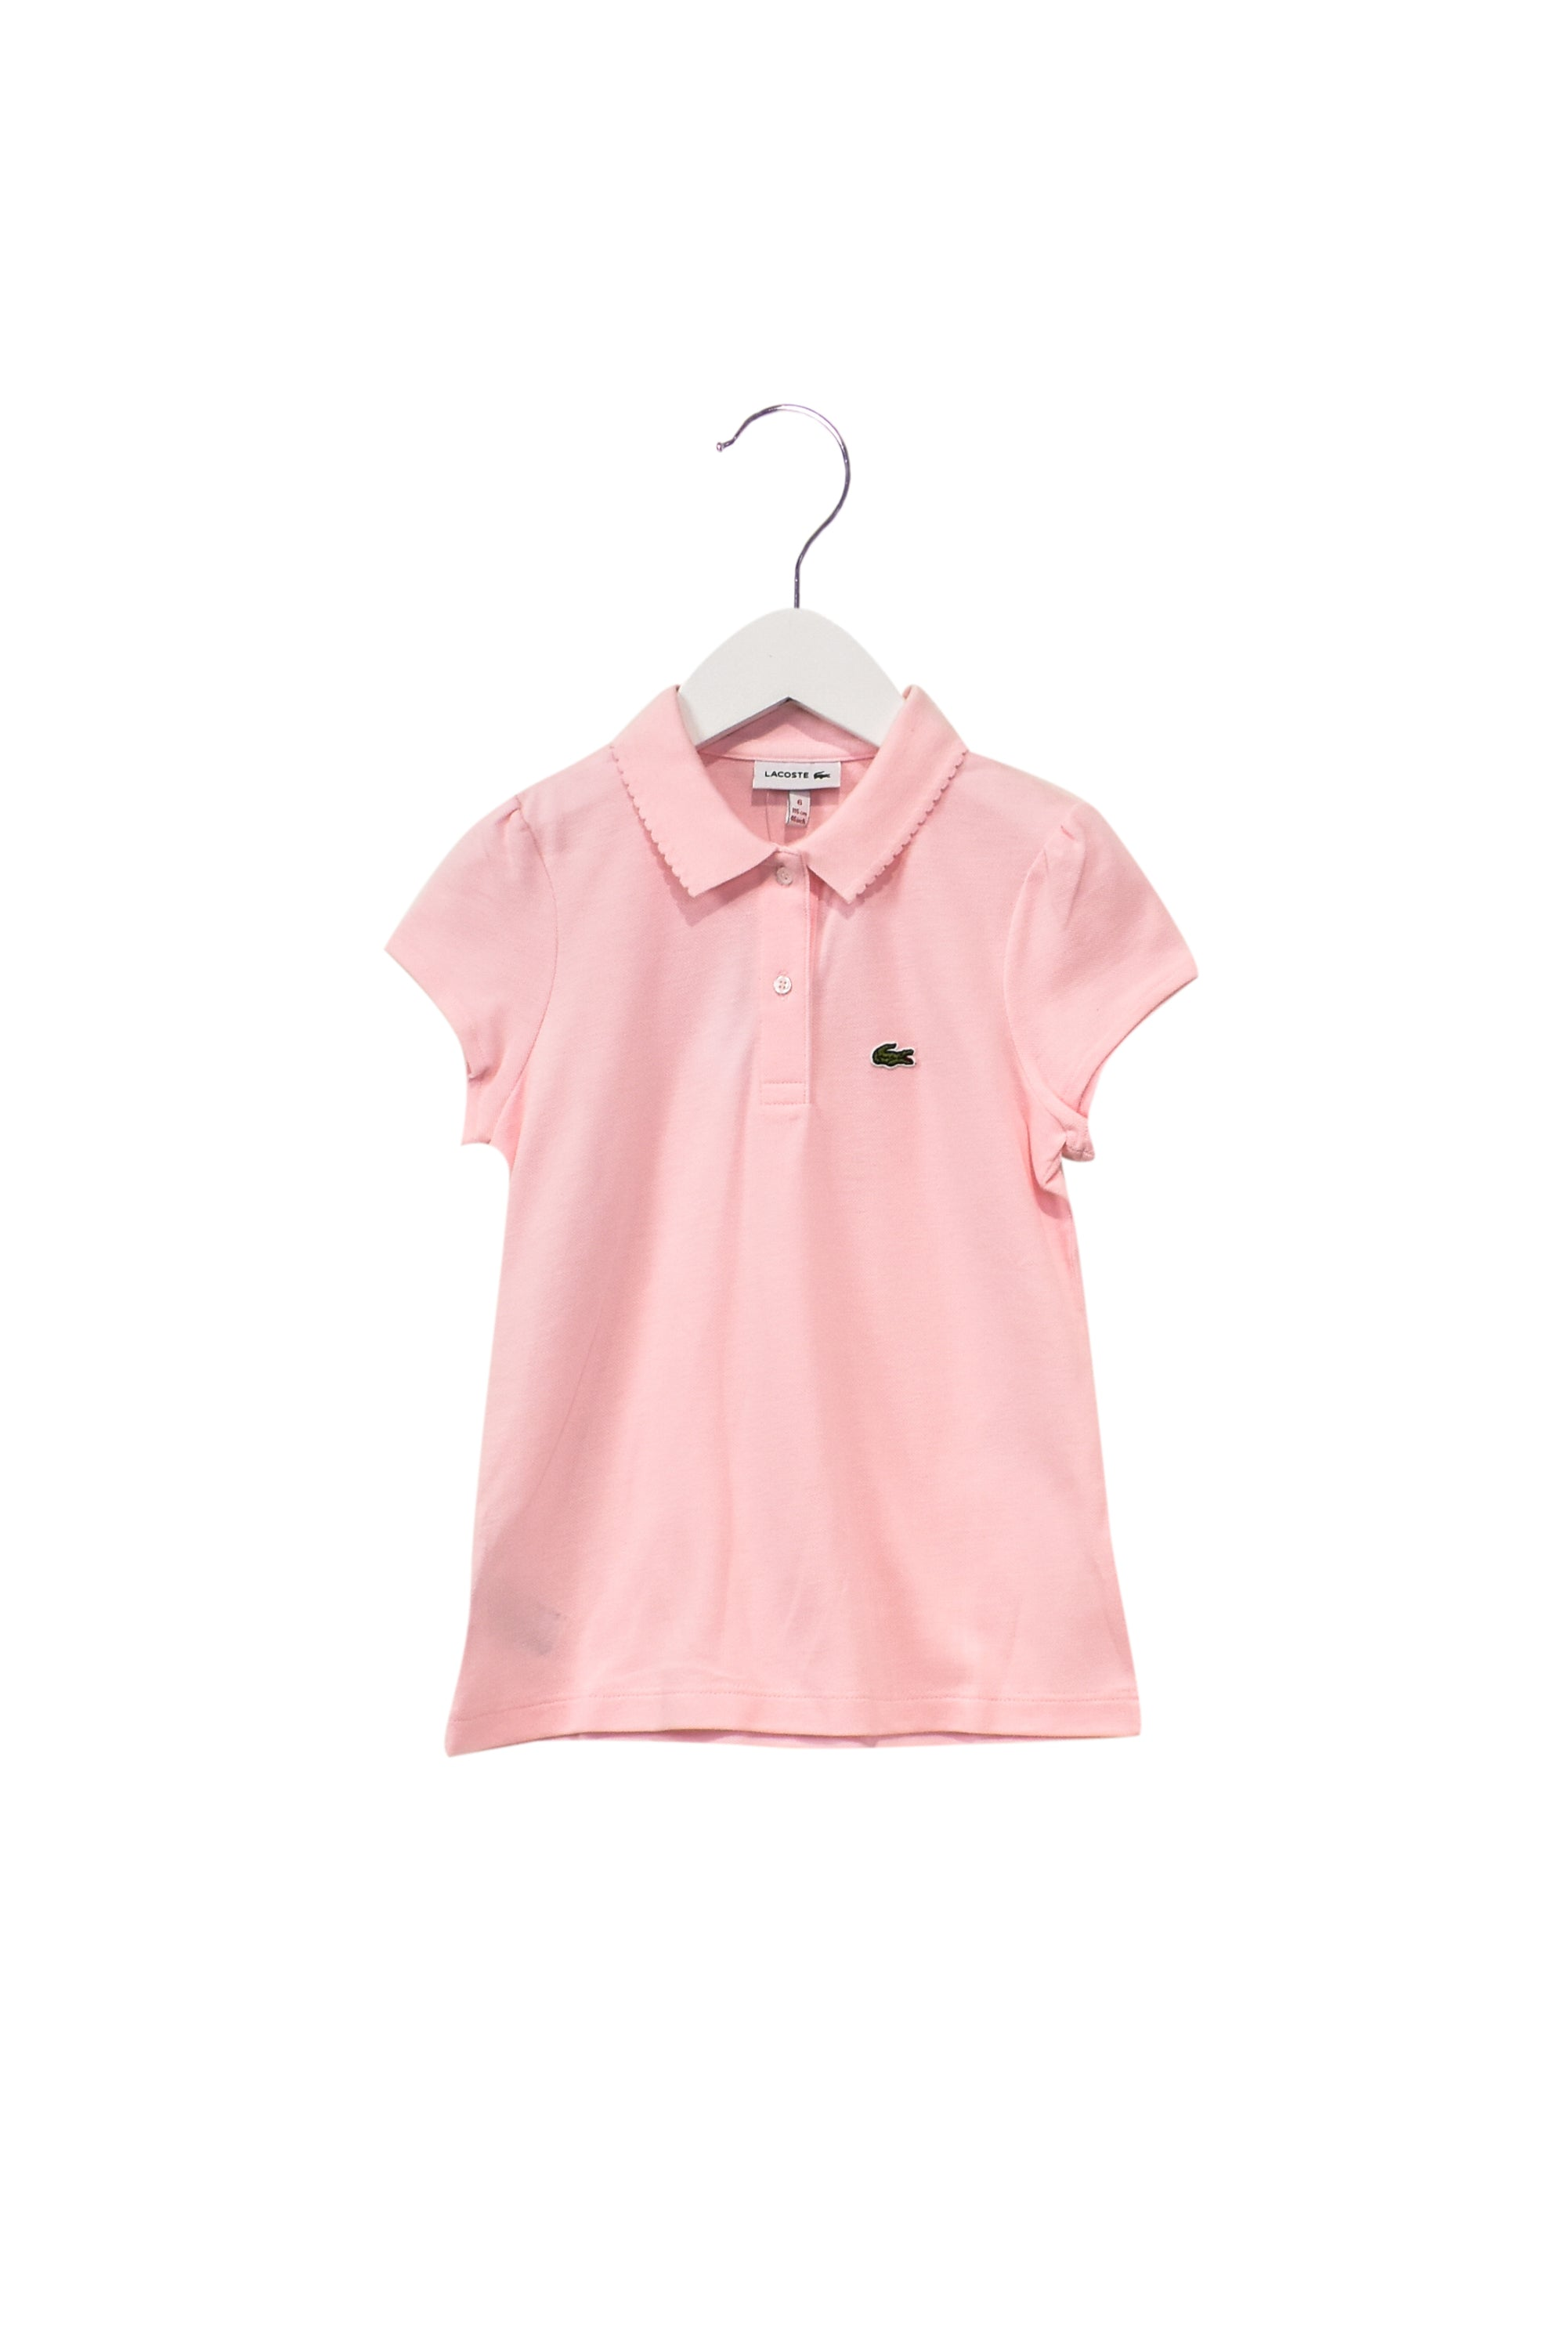 10025937 Lacoste Kids~Polo 6T at Retykle